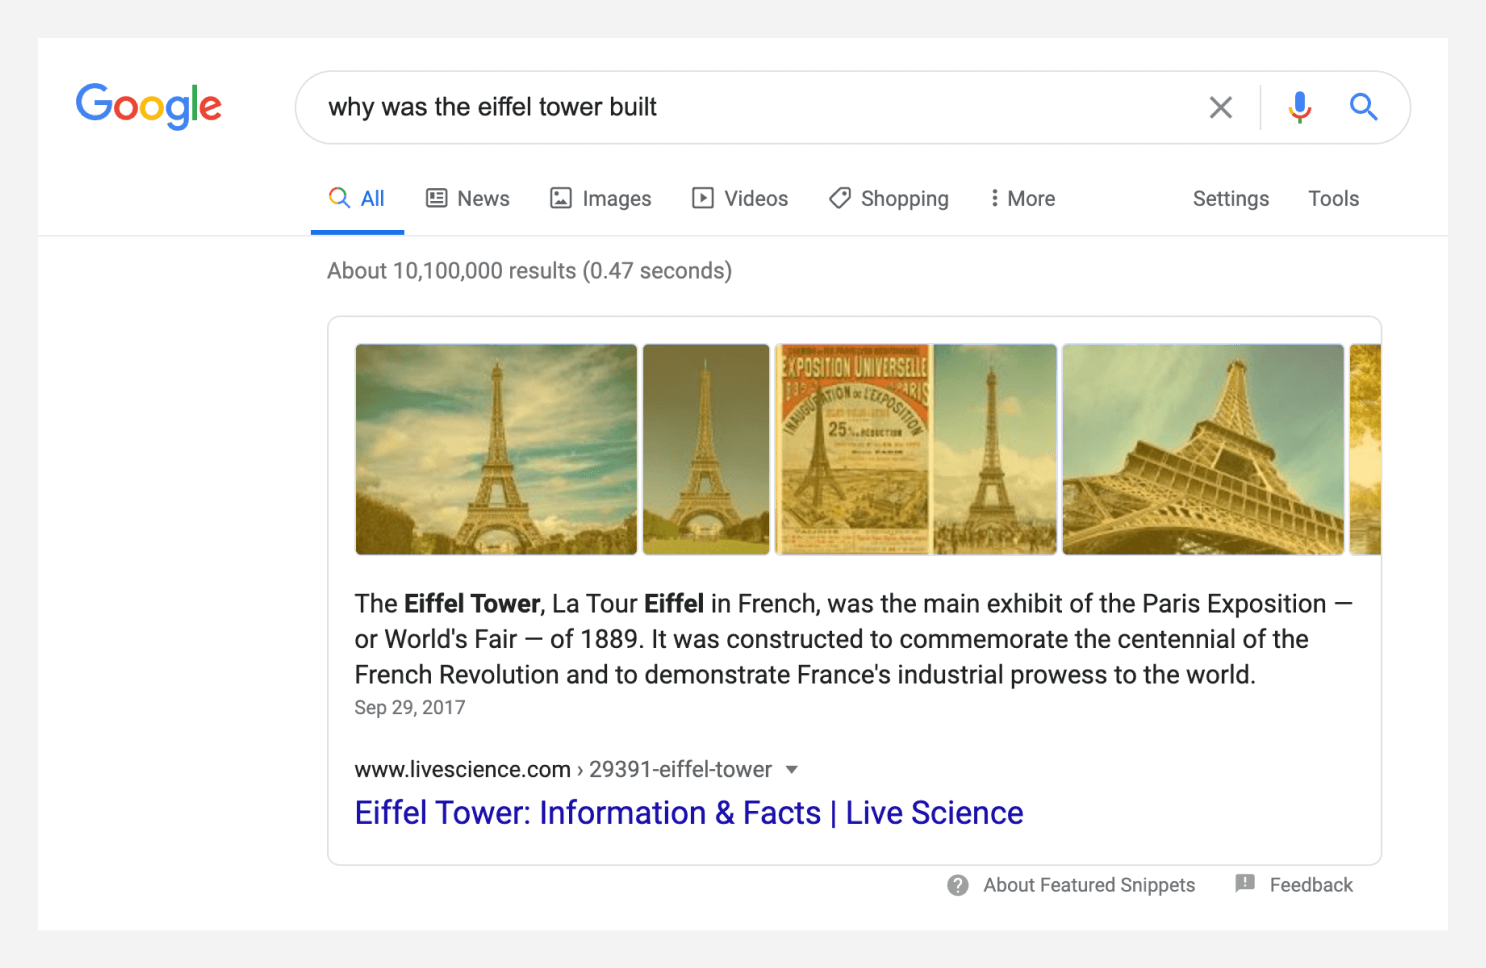 SERP screenshot with the images from the featured snippet highlighted.